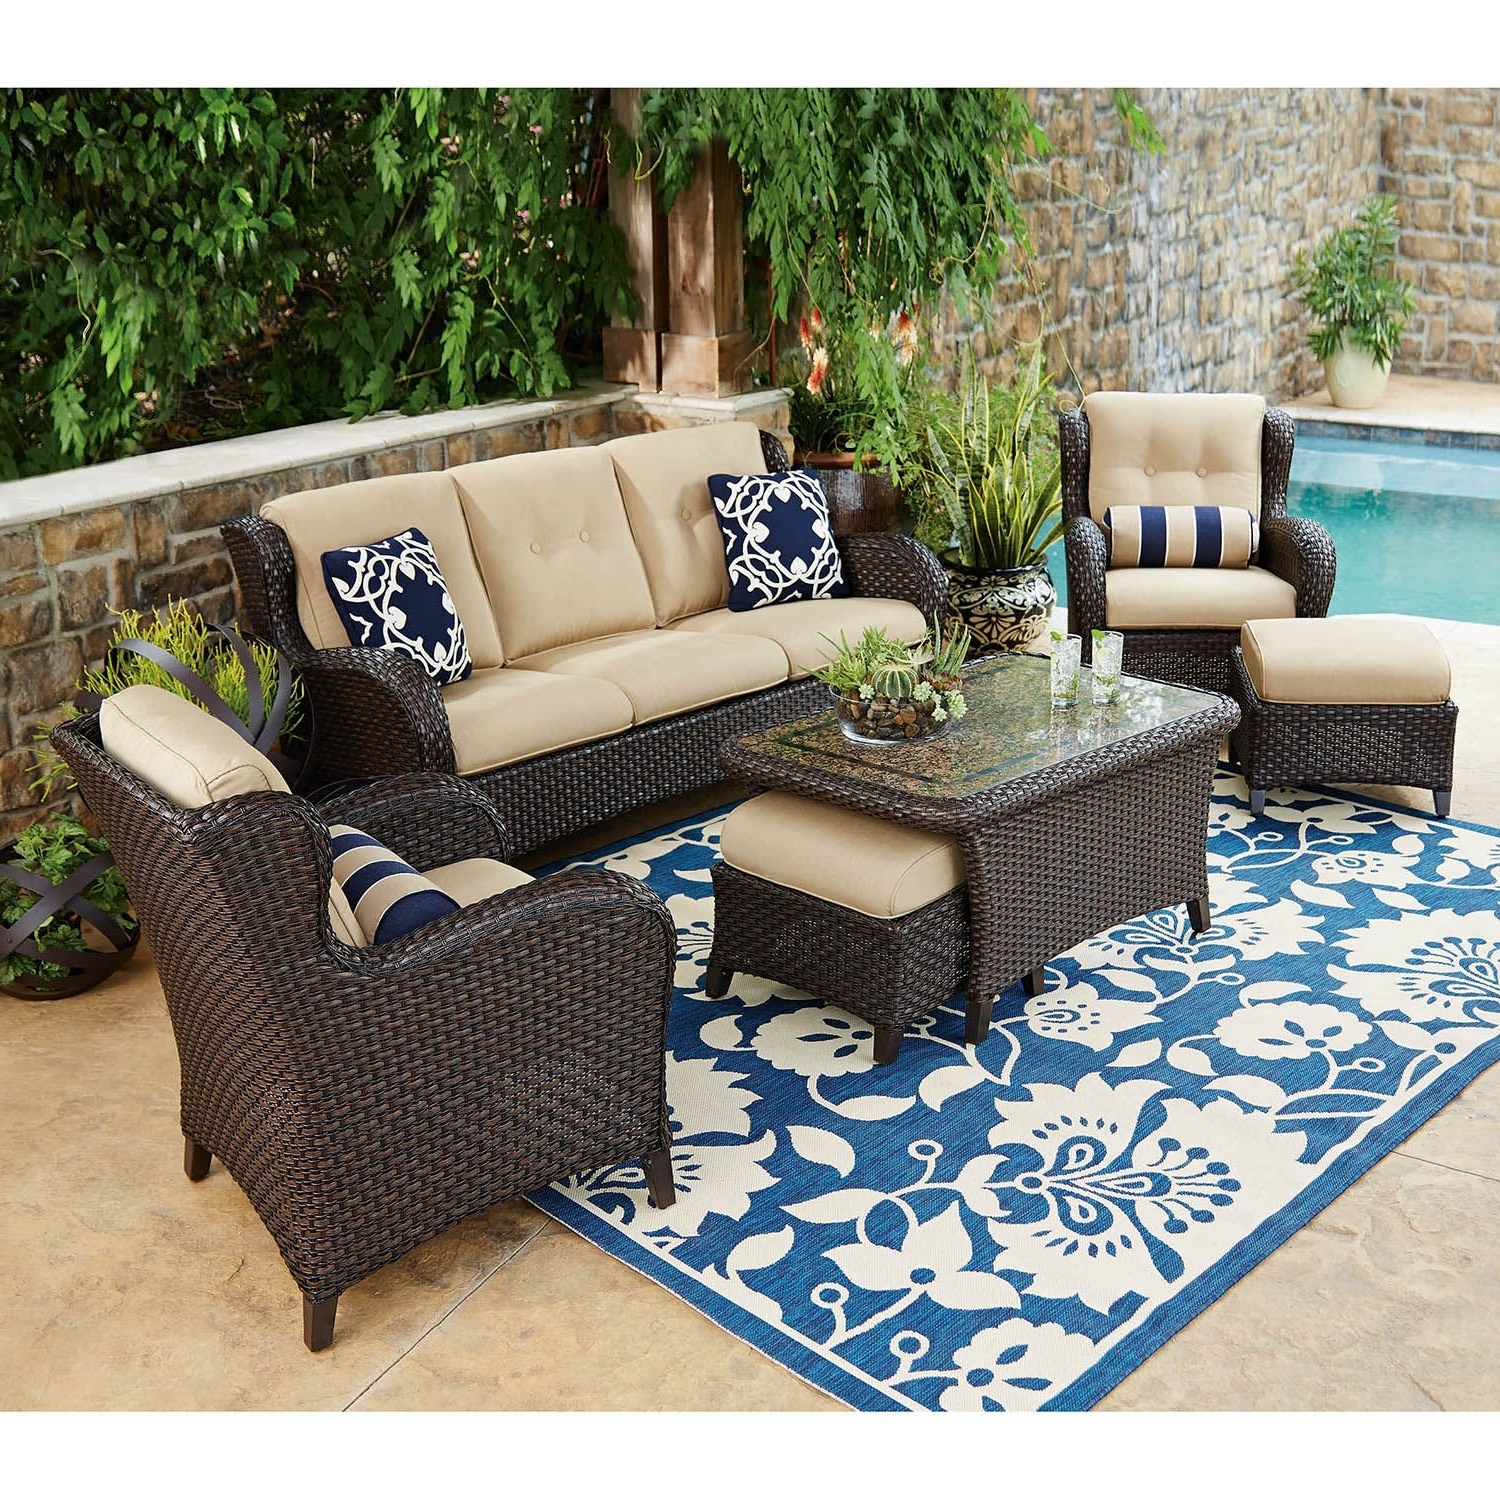 Most Recently Released Patio : Patio Couch Set Fire Pit Inspirational Furniture With Tab Regarding Wayfair Outdoor Patio Conversation Sets (View 7 of 20)